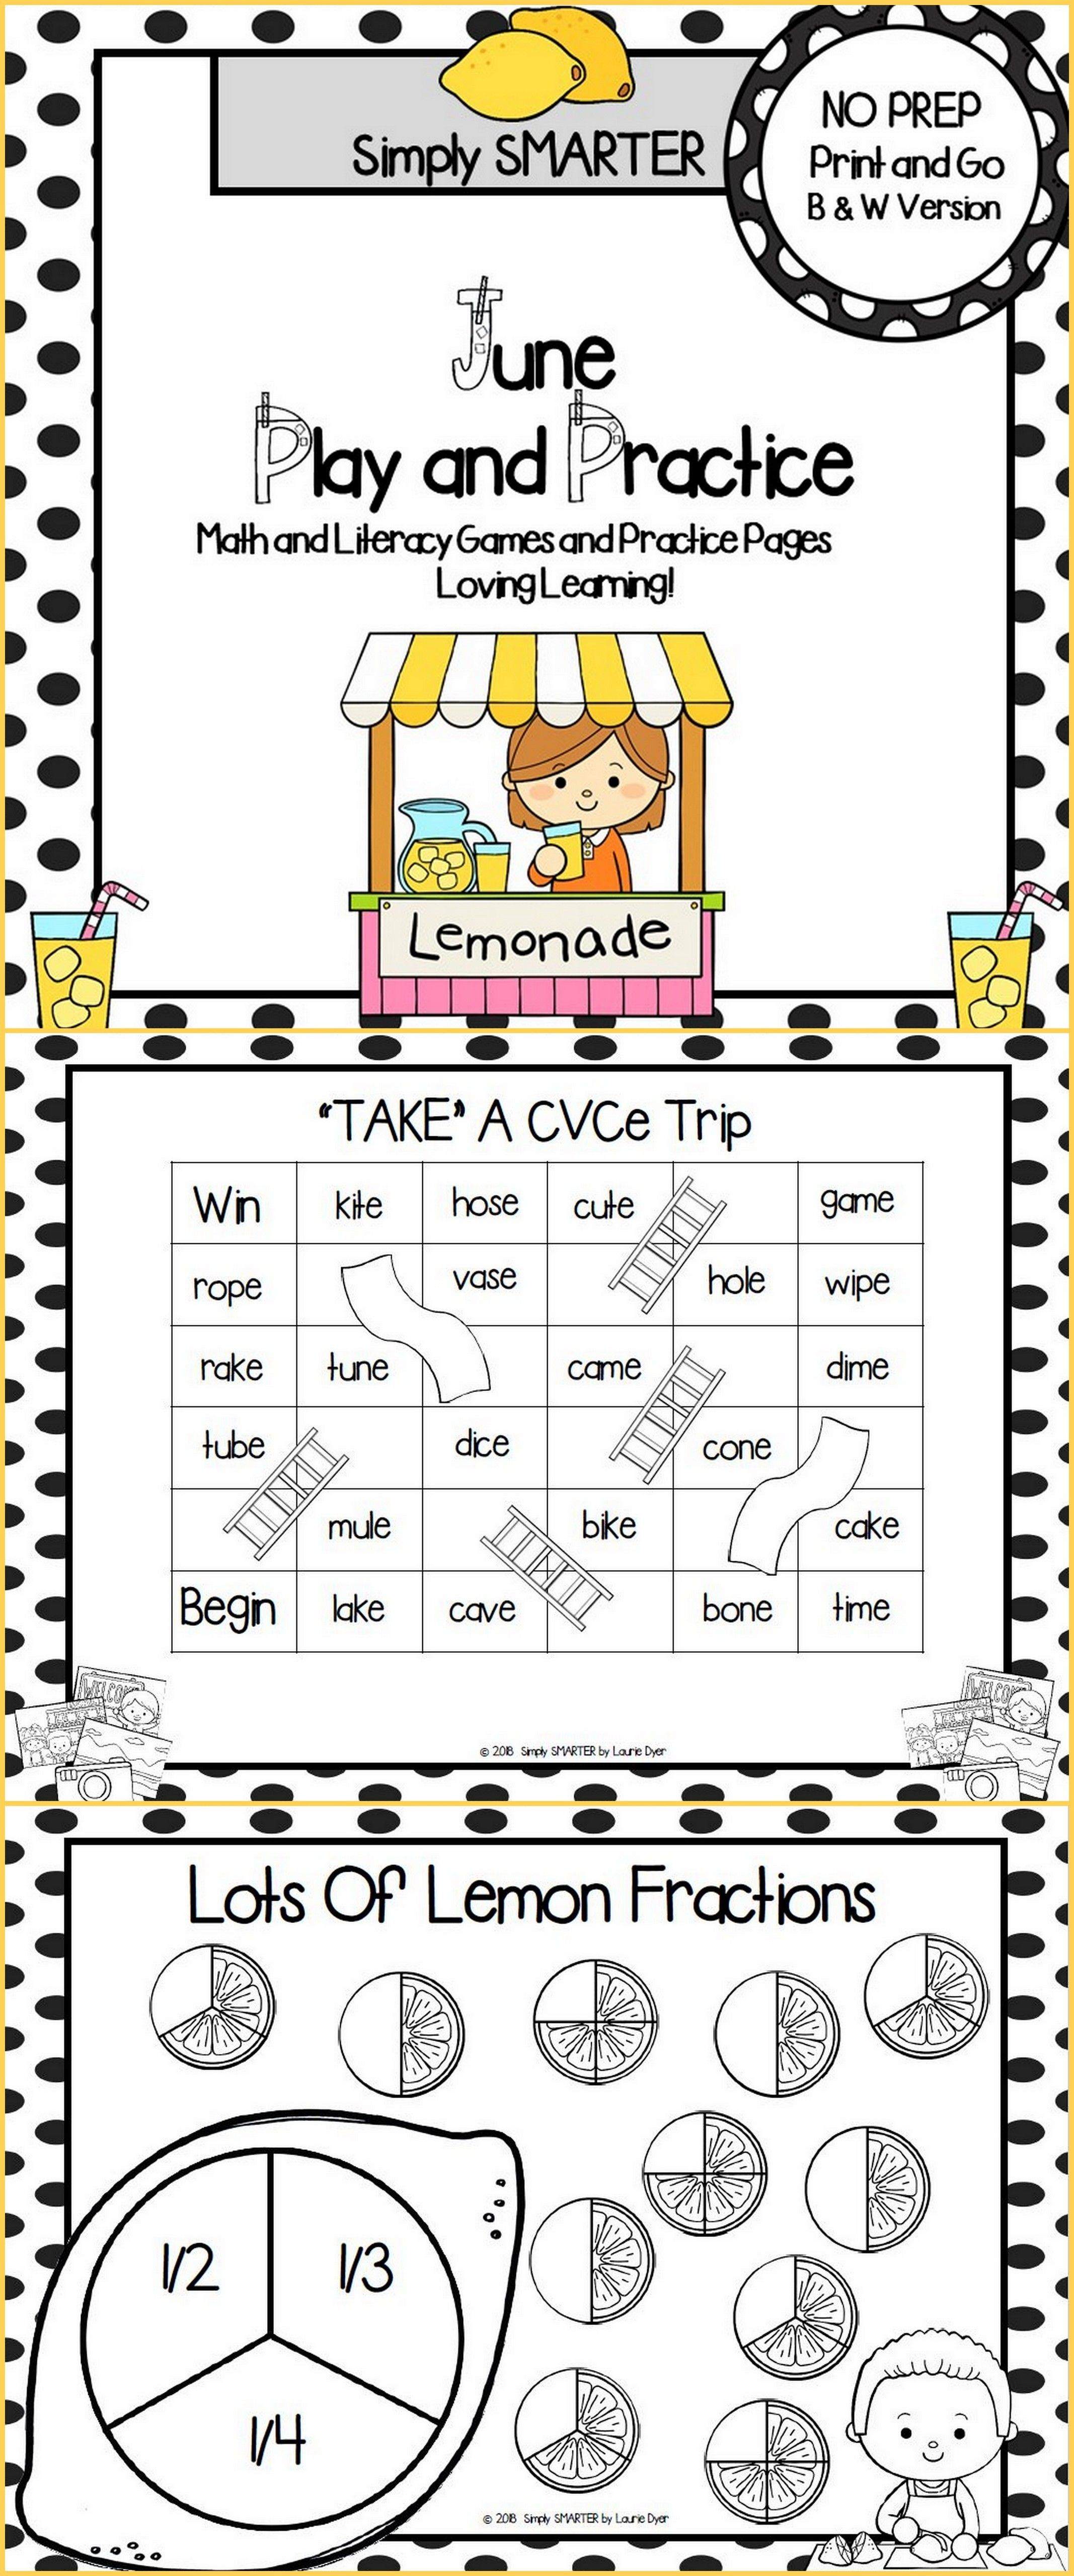 June Play And Practice No Prep Math And Literacy Games